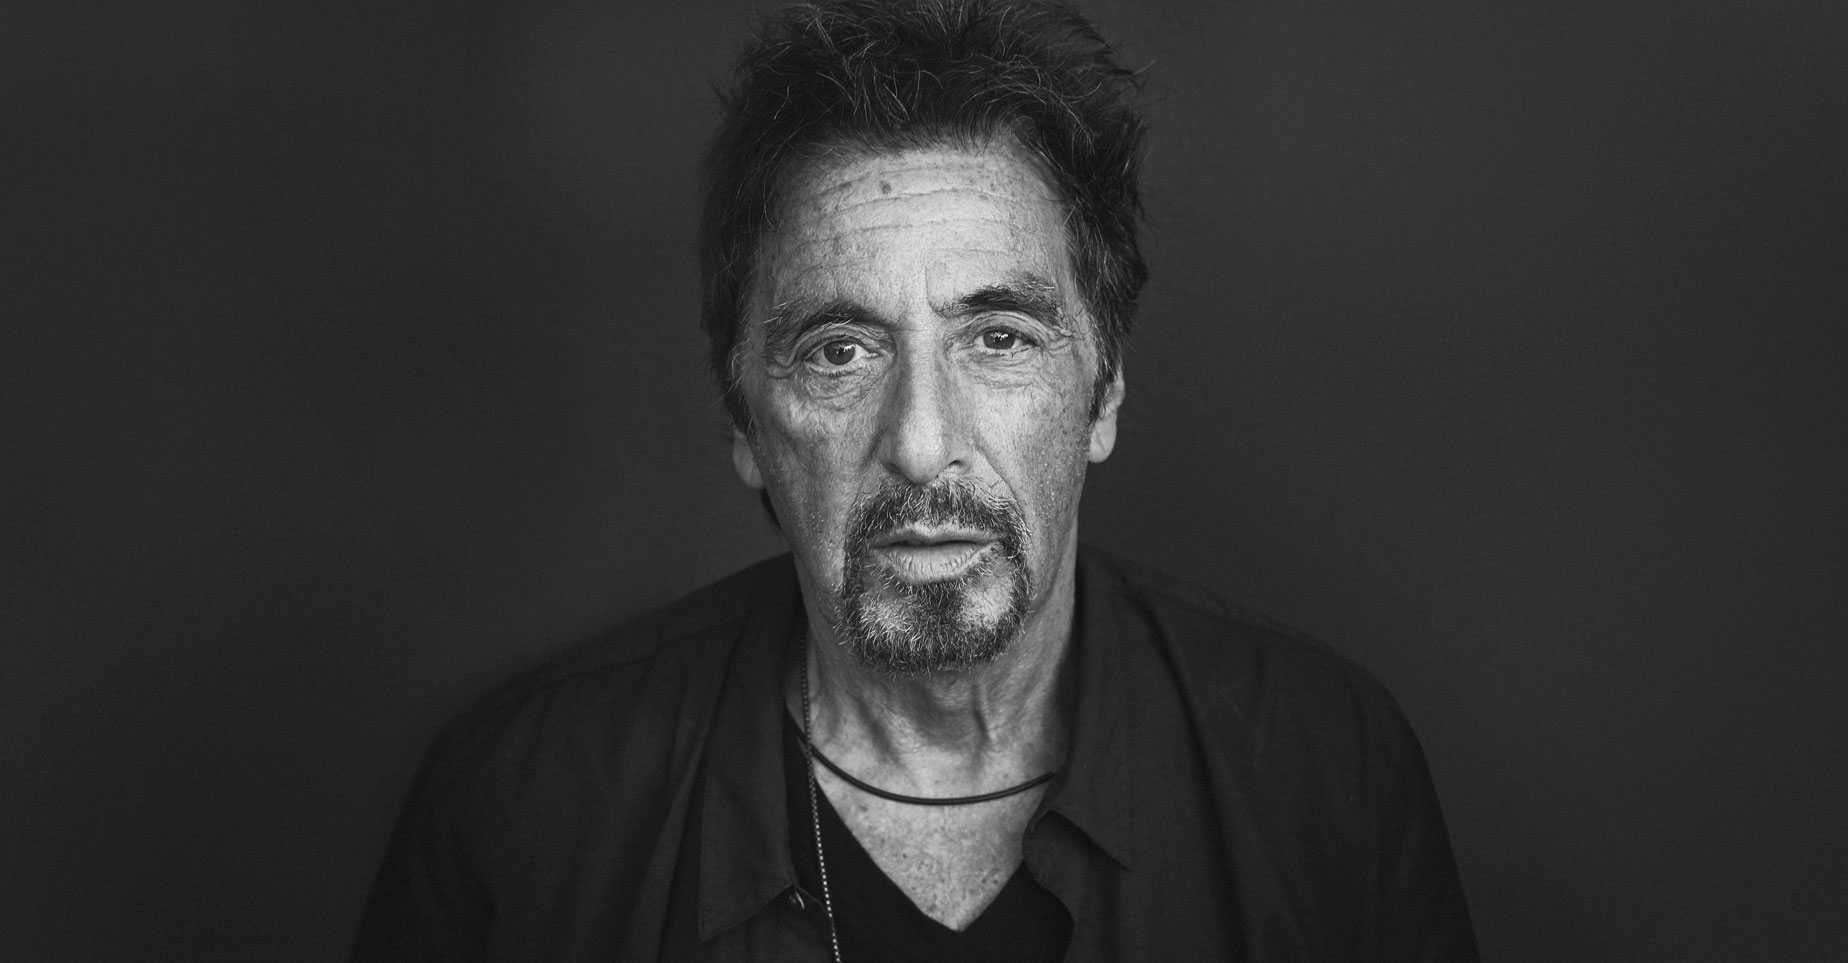 Al Pacino weight, heig...